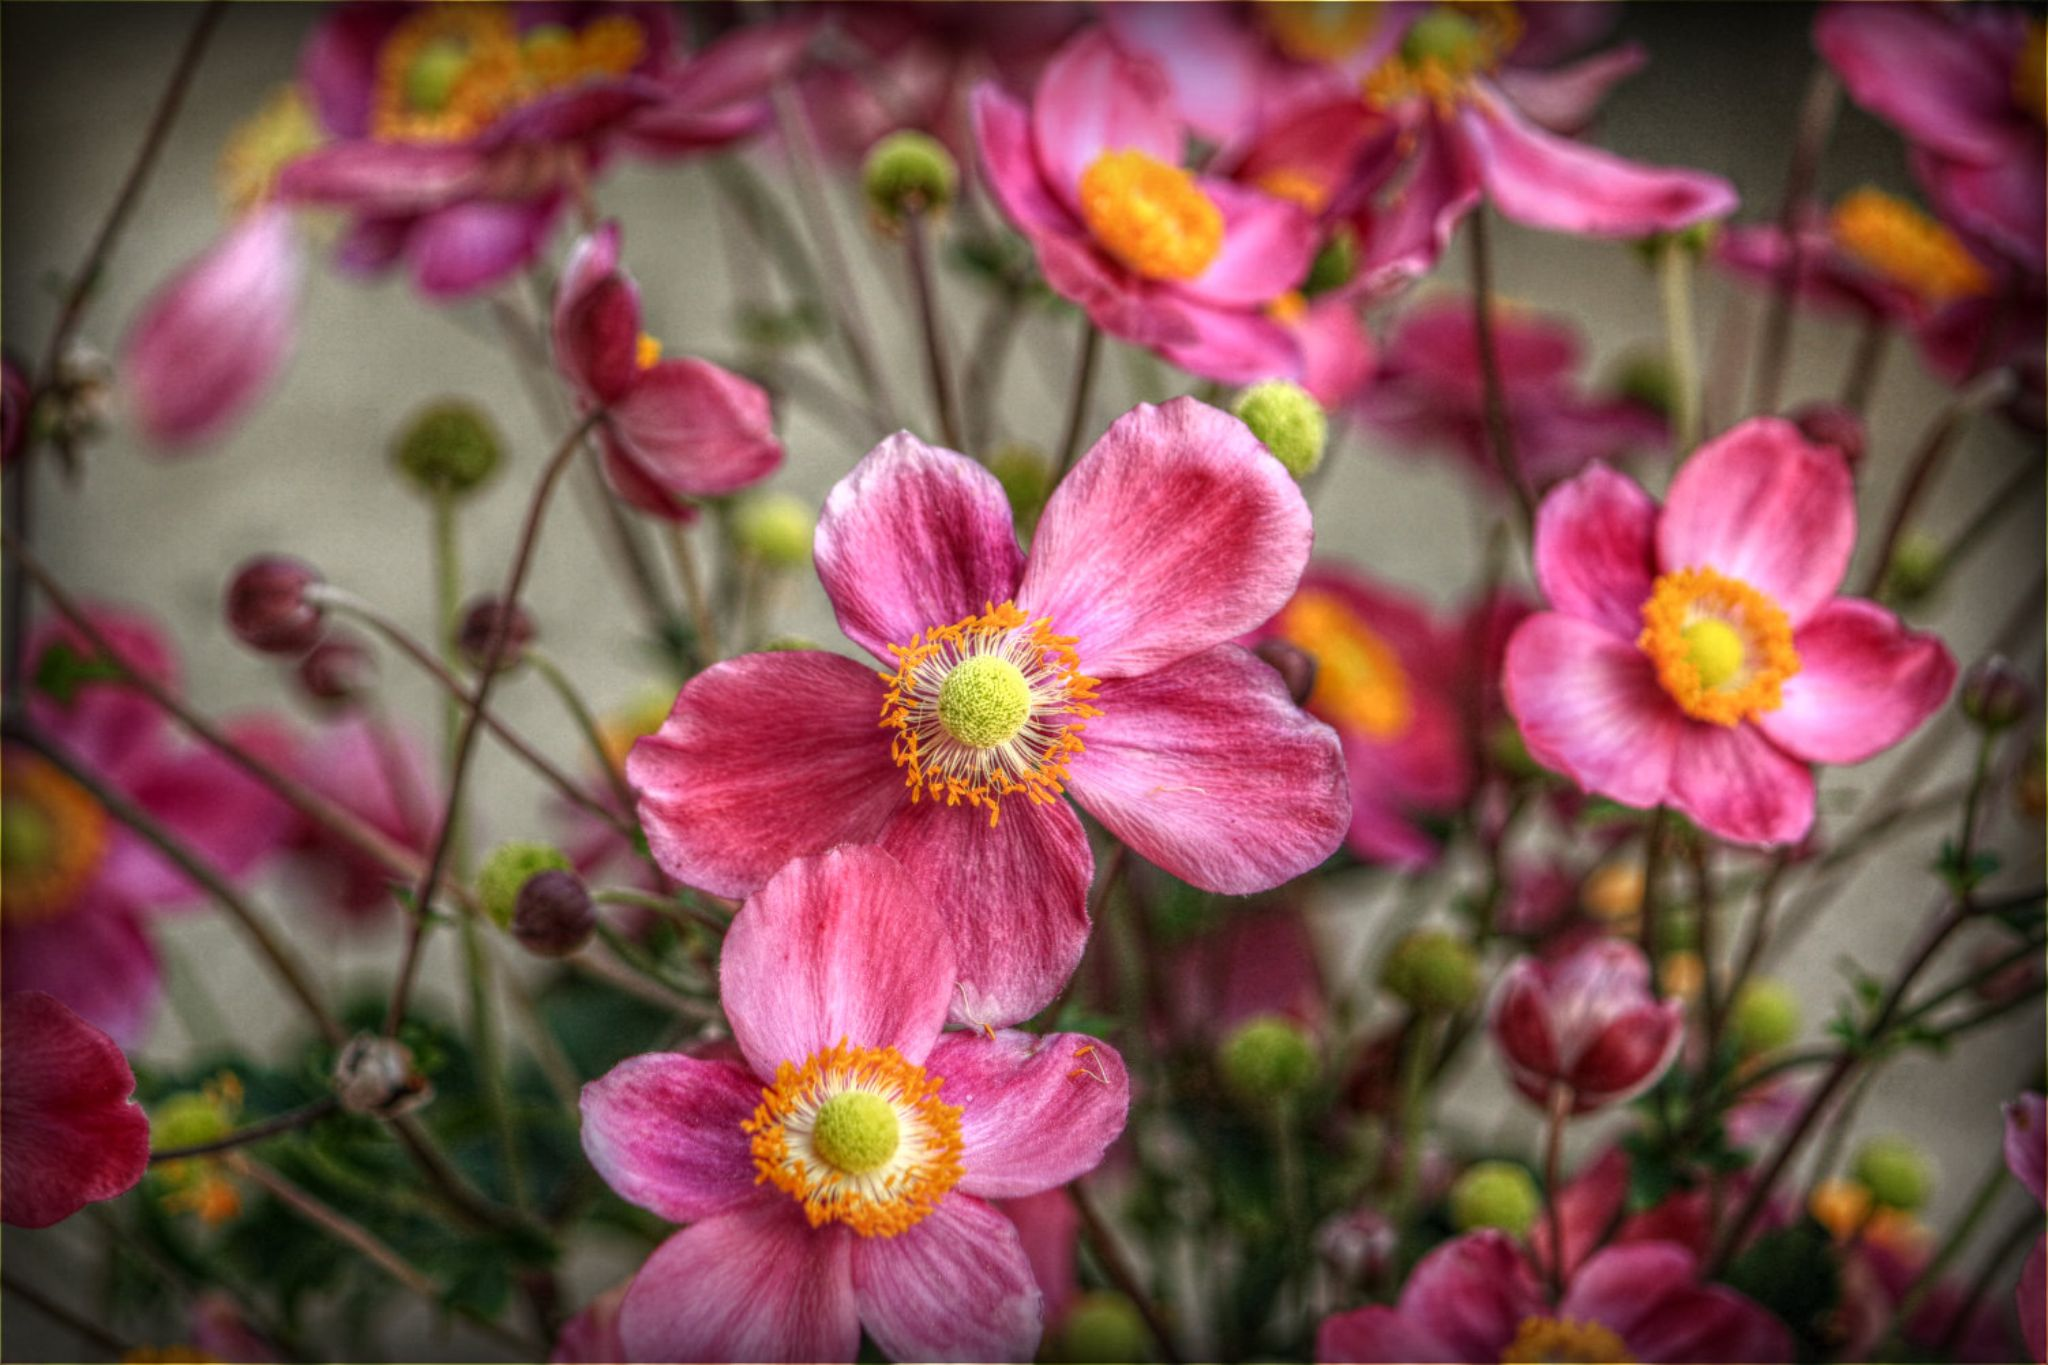 Anemone by sillitilly